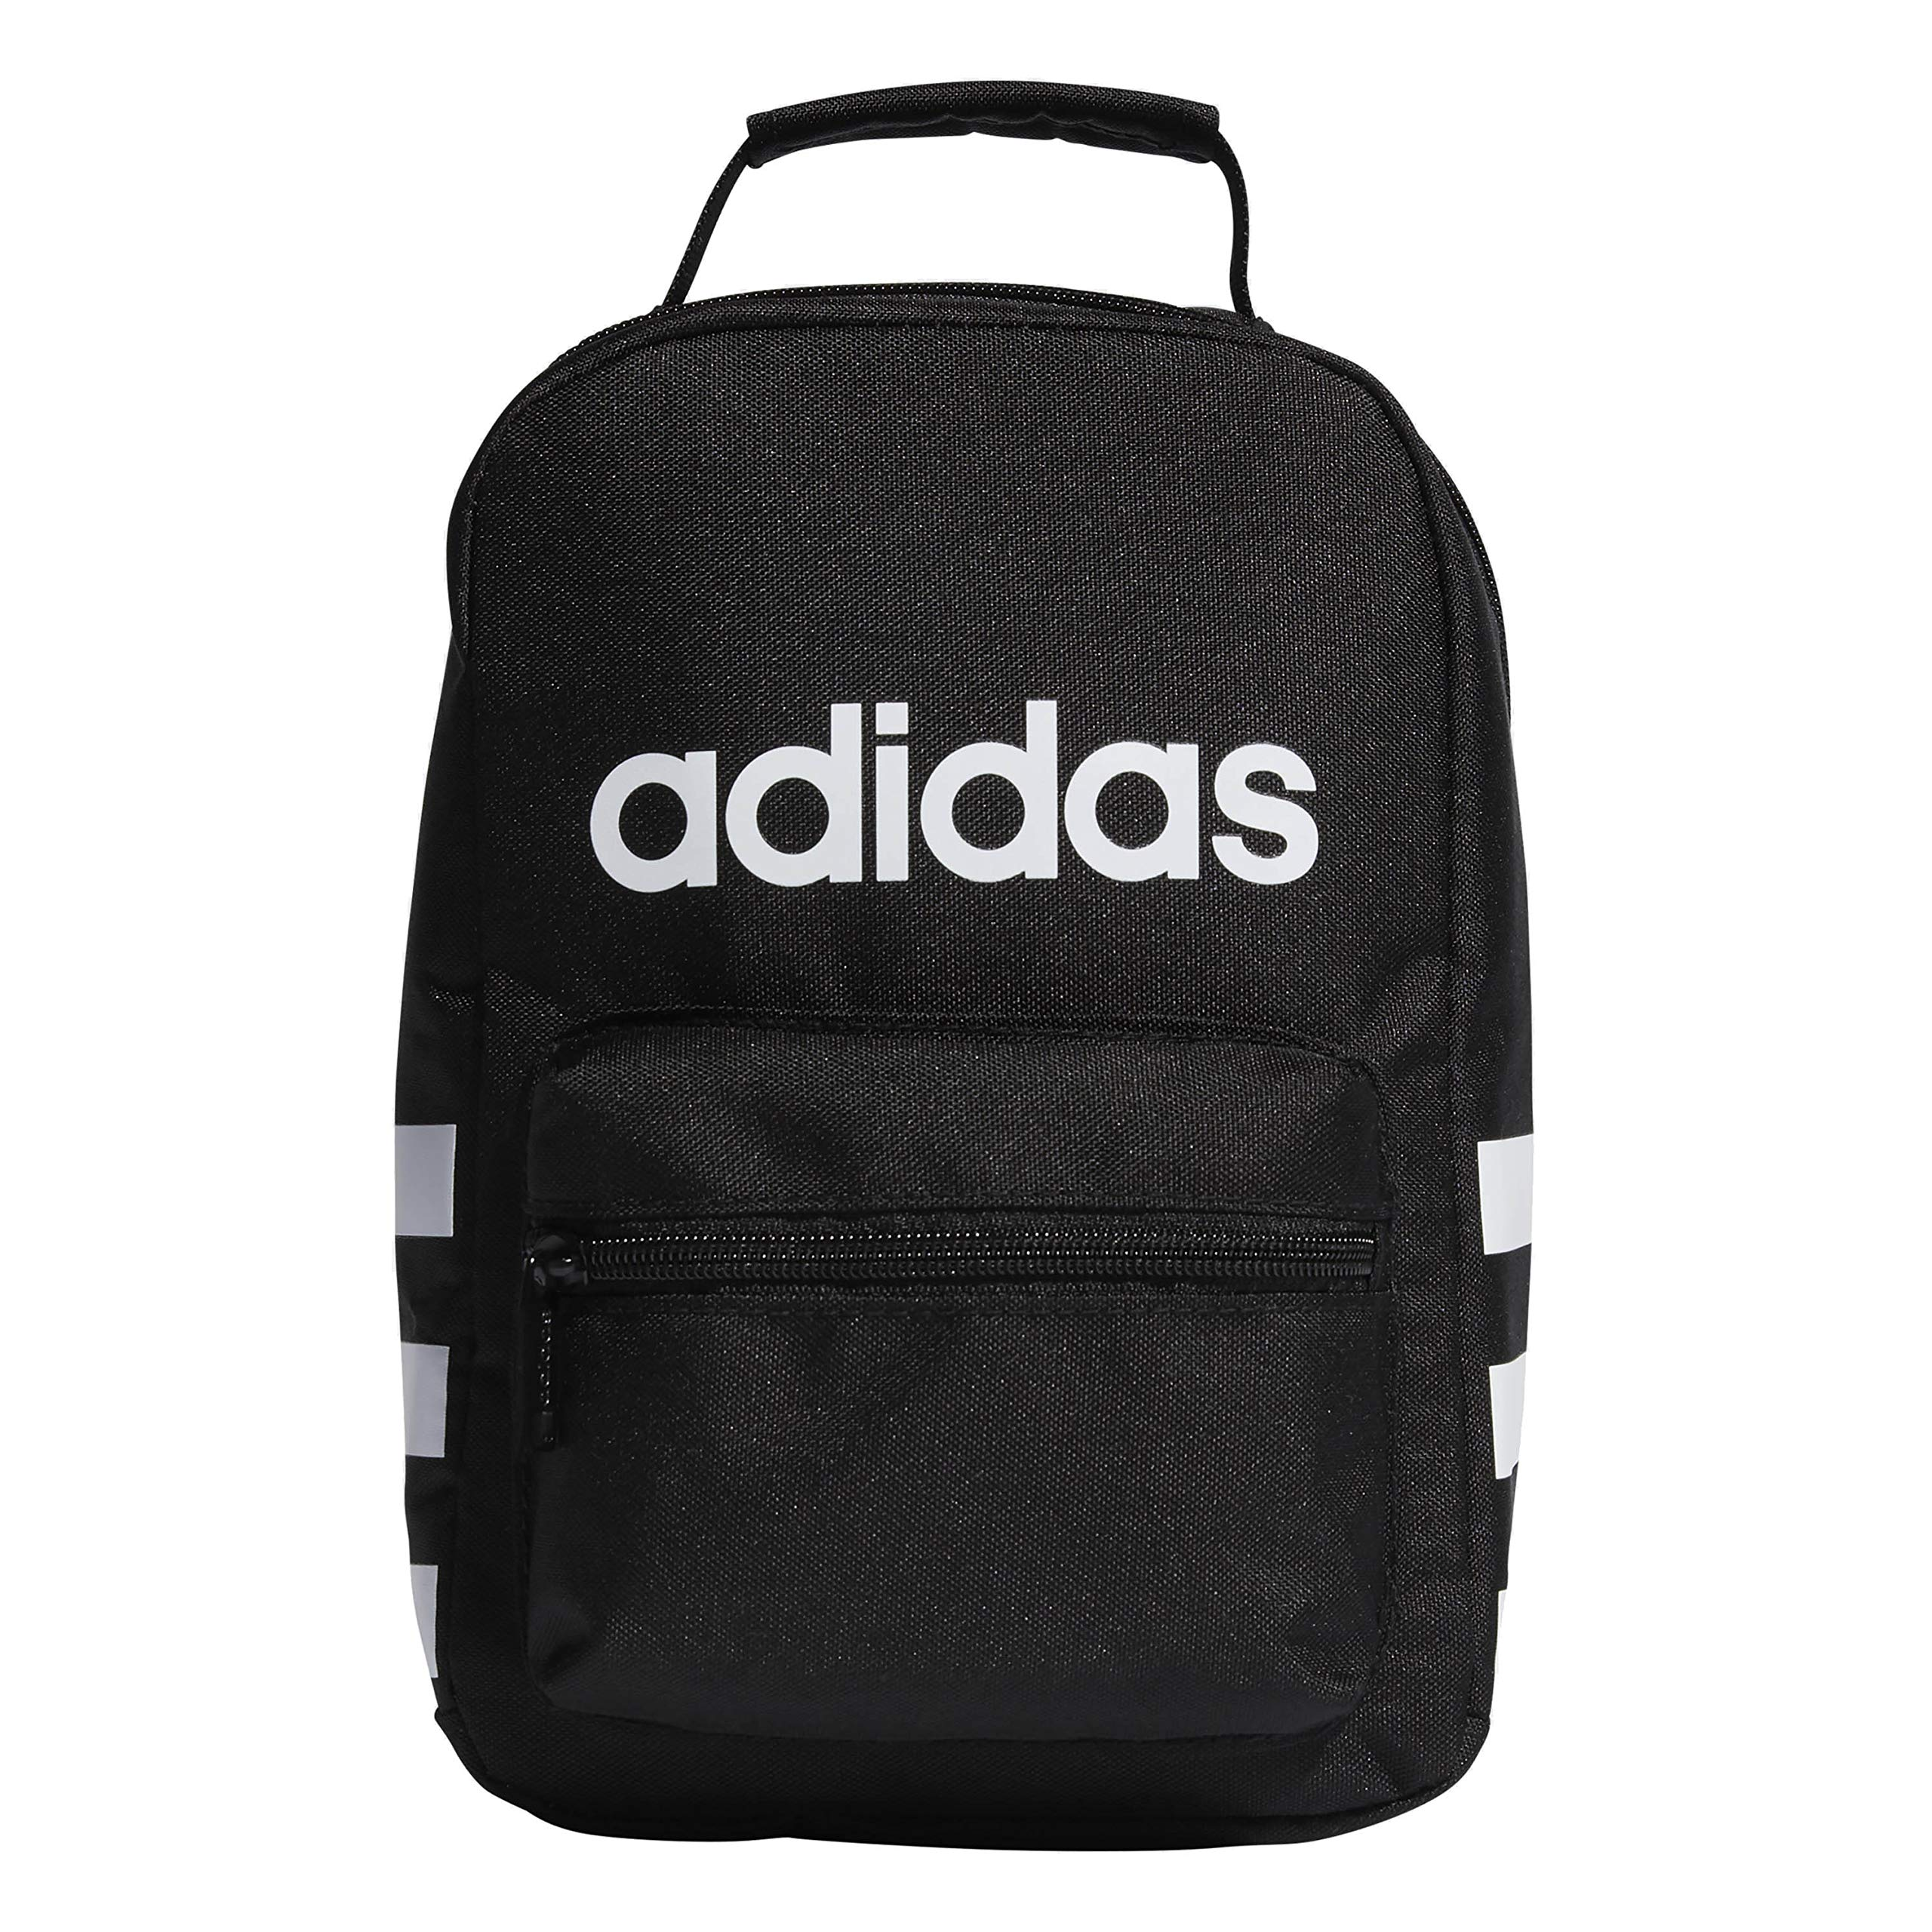 adidas Unisex Santiago Insulated Lunch Bag, Black/White, ONE SIZE by adidas